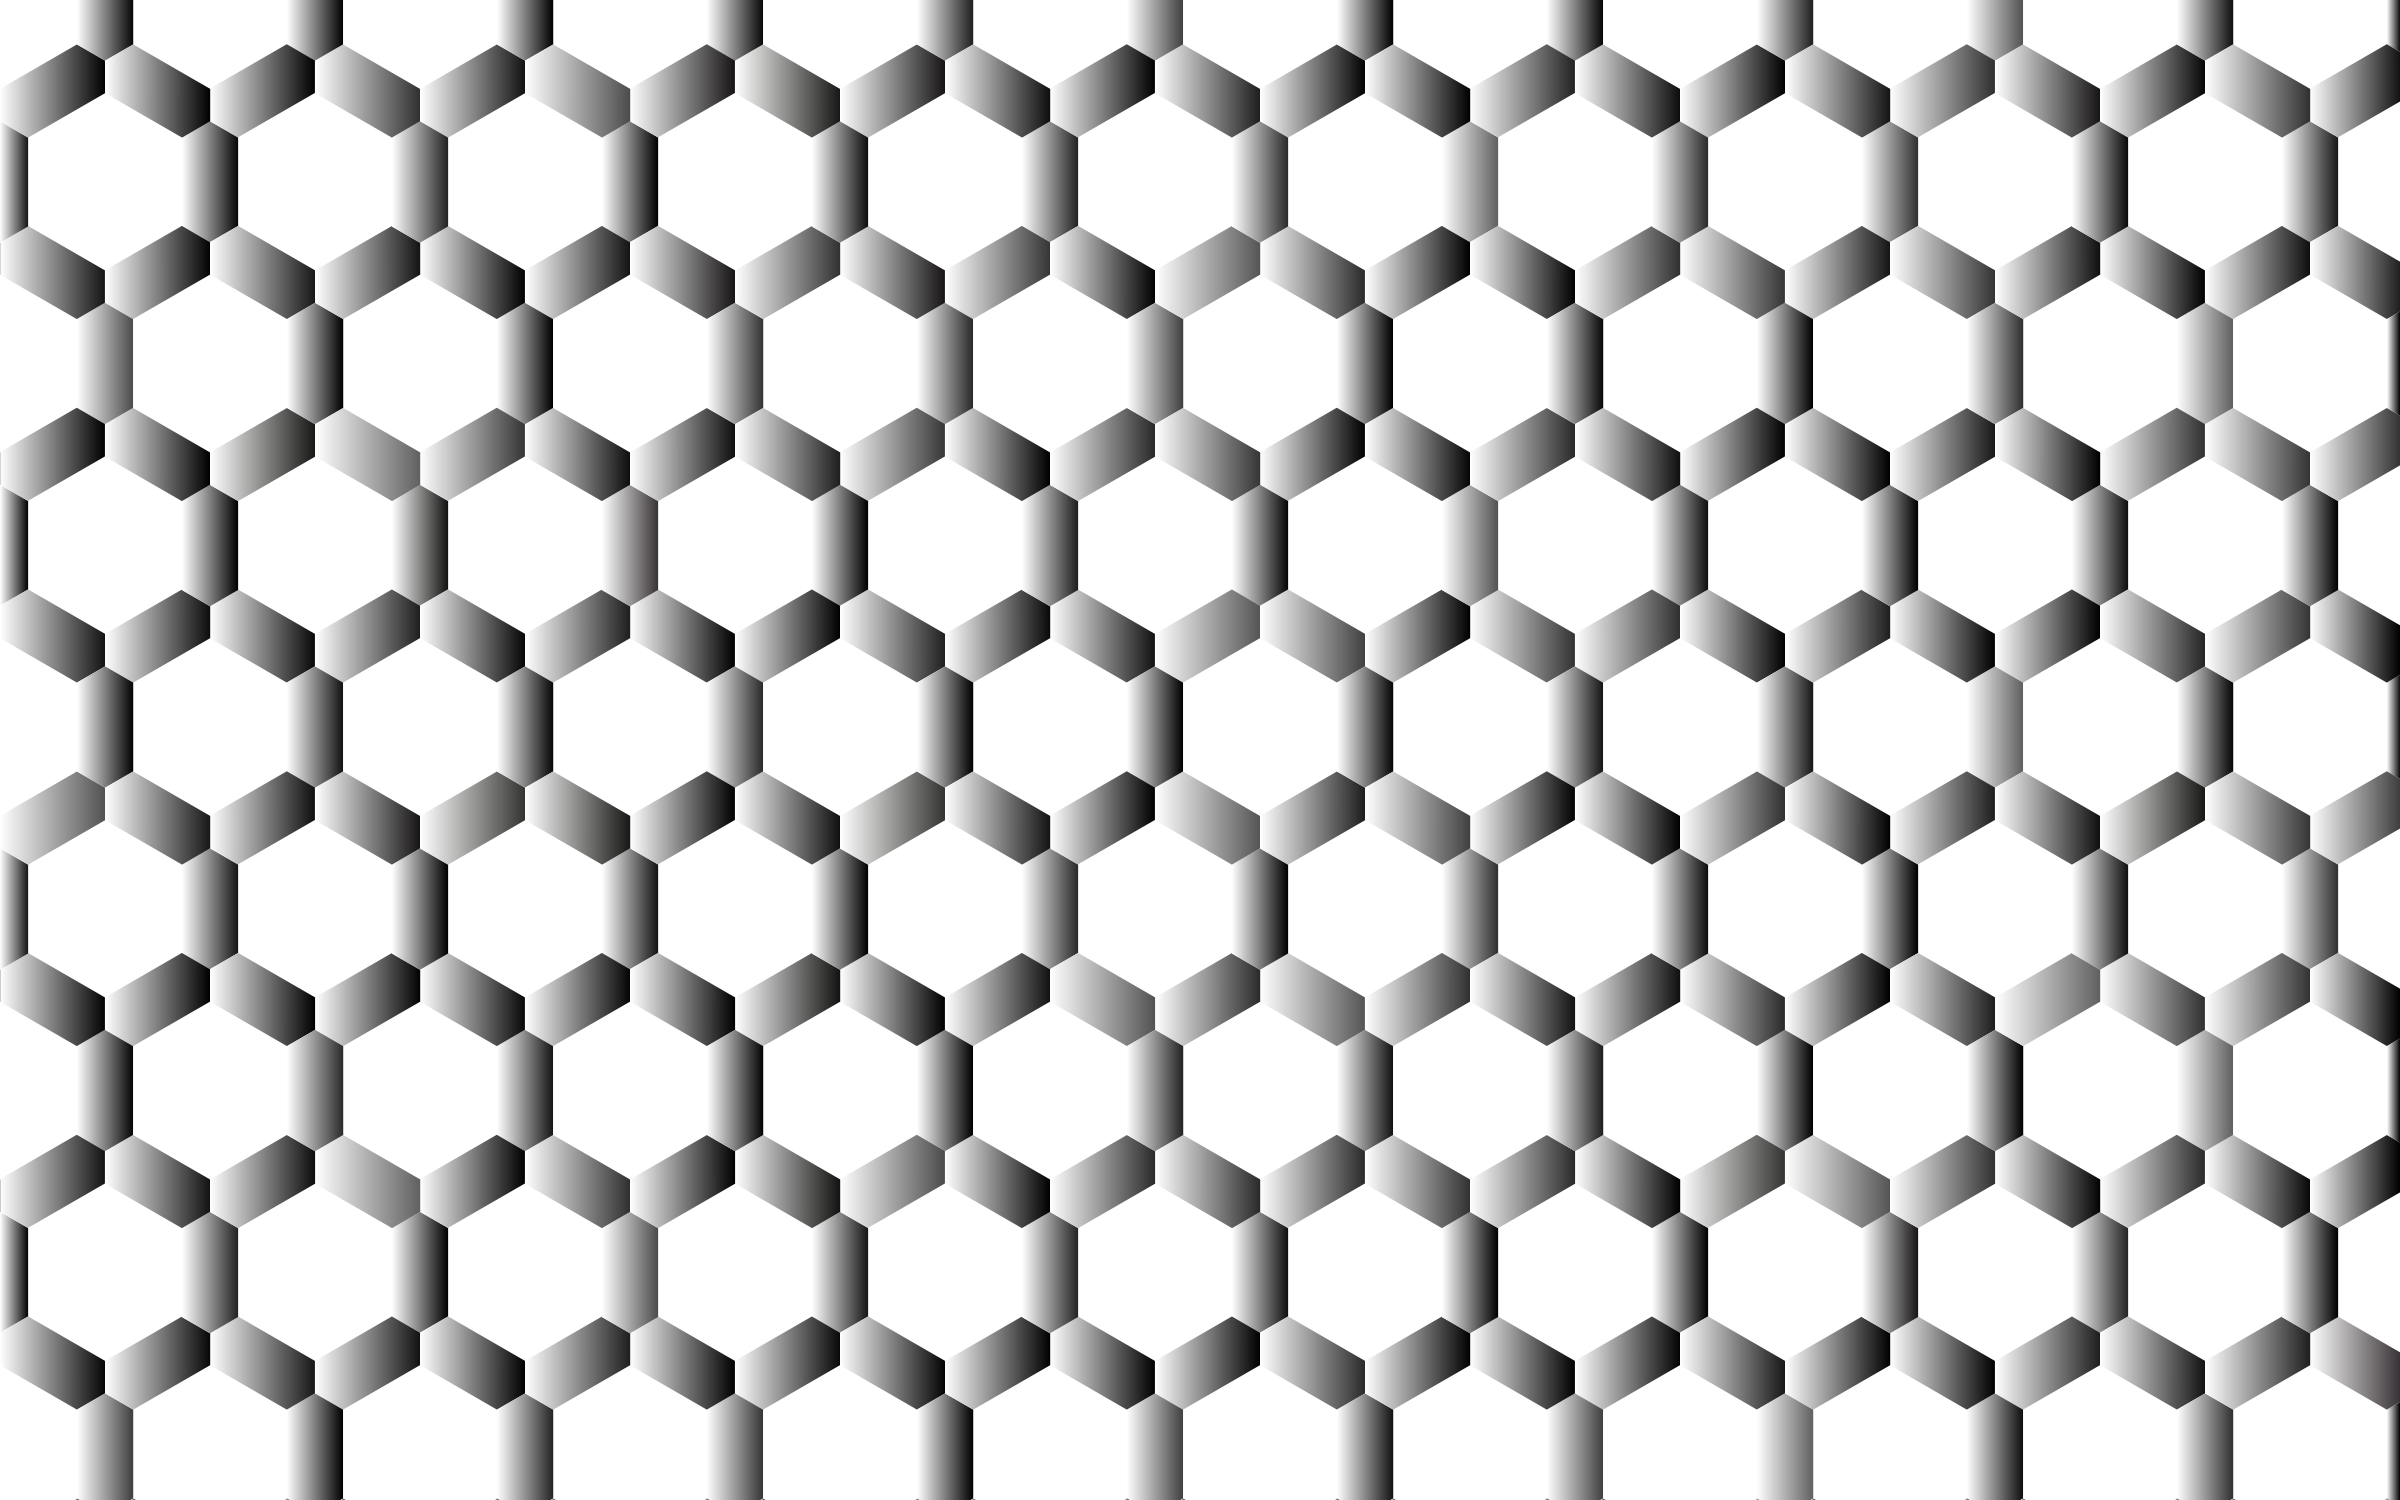 Prismatic Hexagonal Geometric Pattern 4 No Background by GDJ